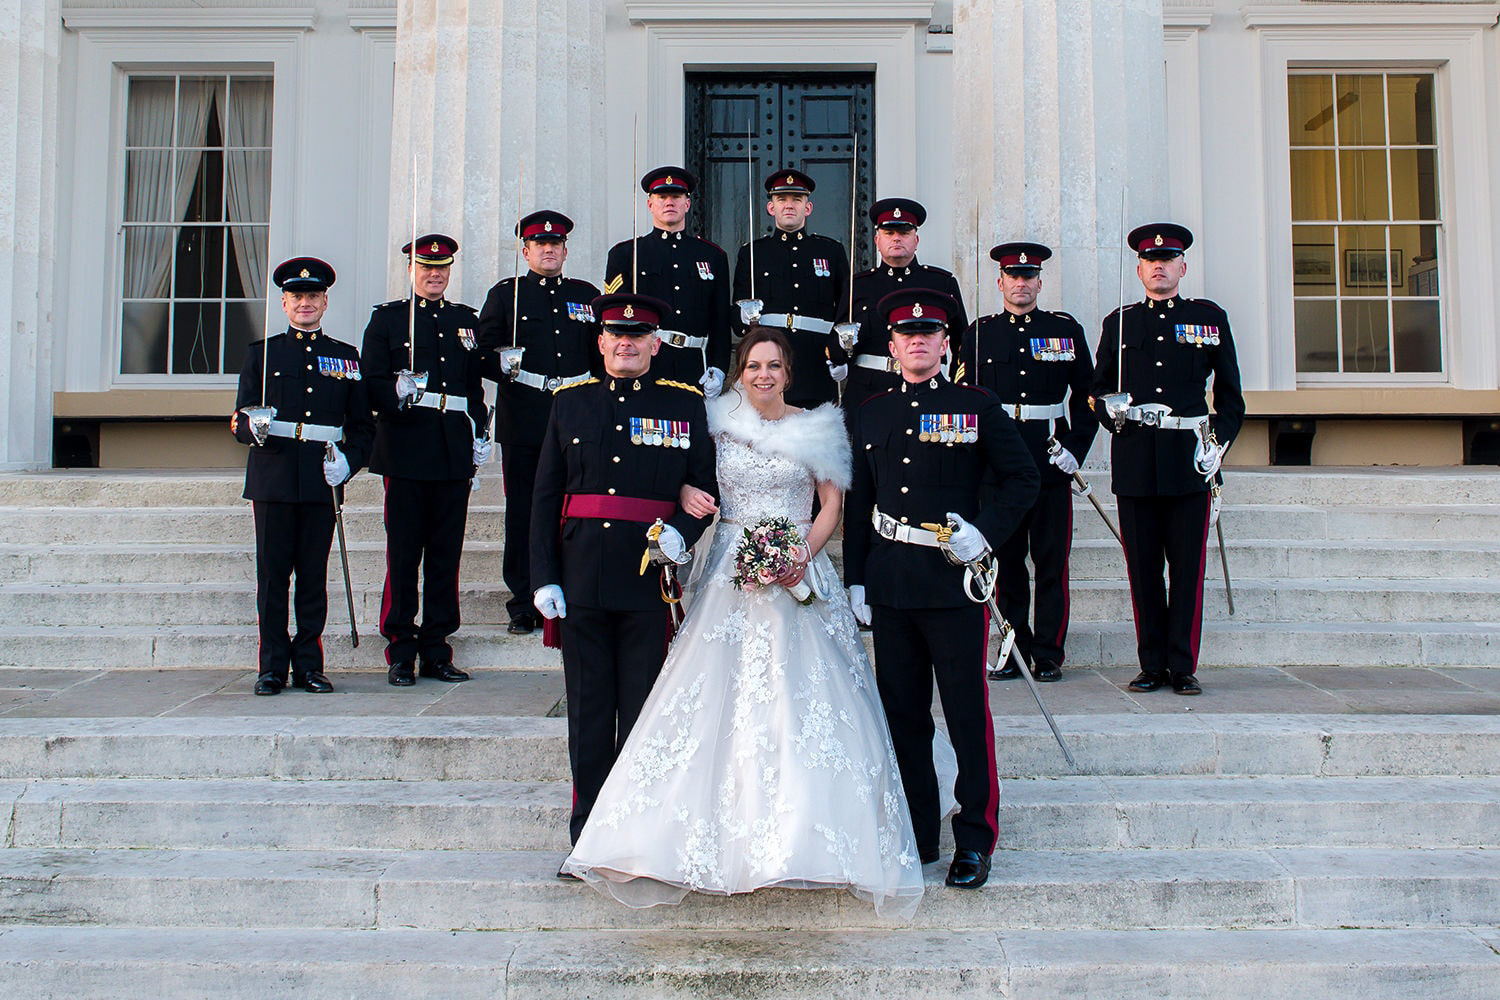 old-college-steps-Sandhurst-wedding-photos-2.jpg